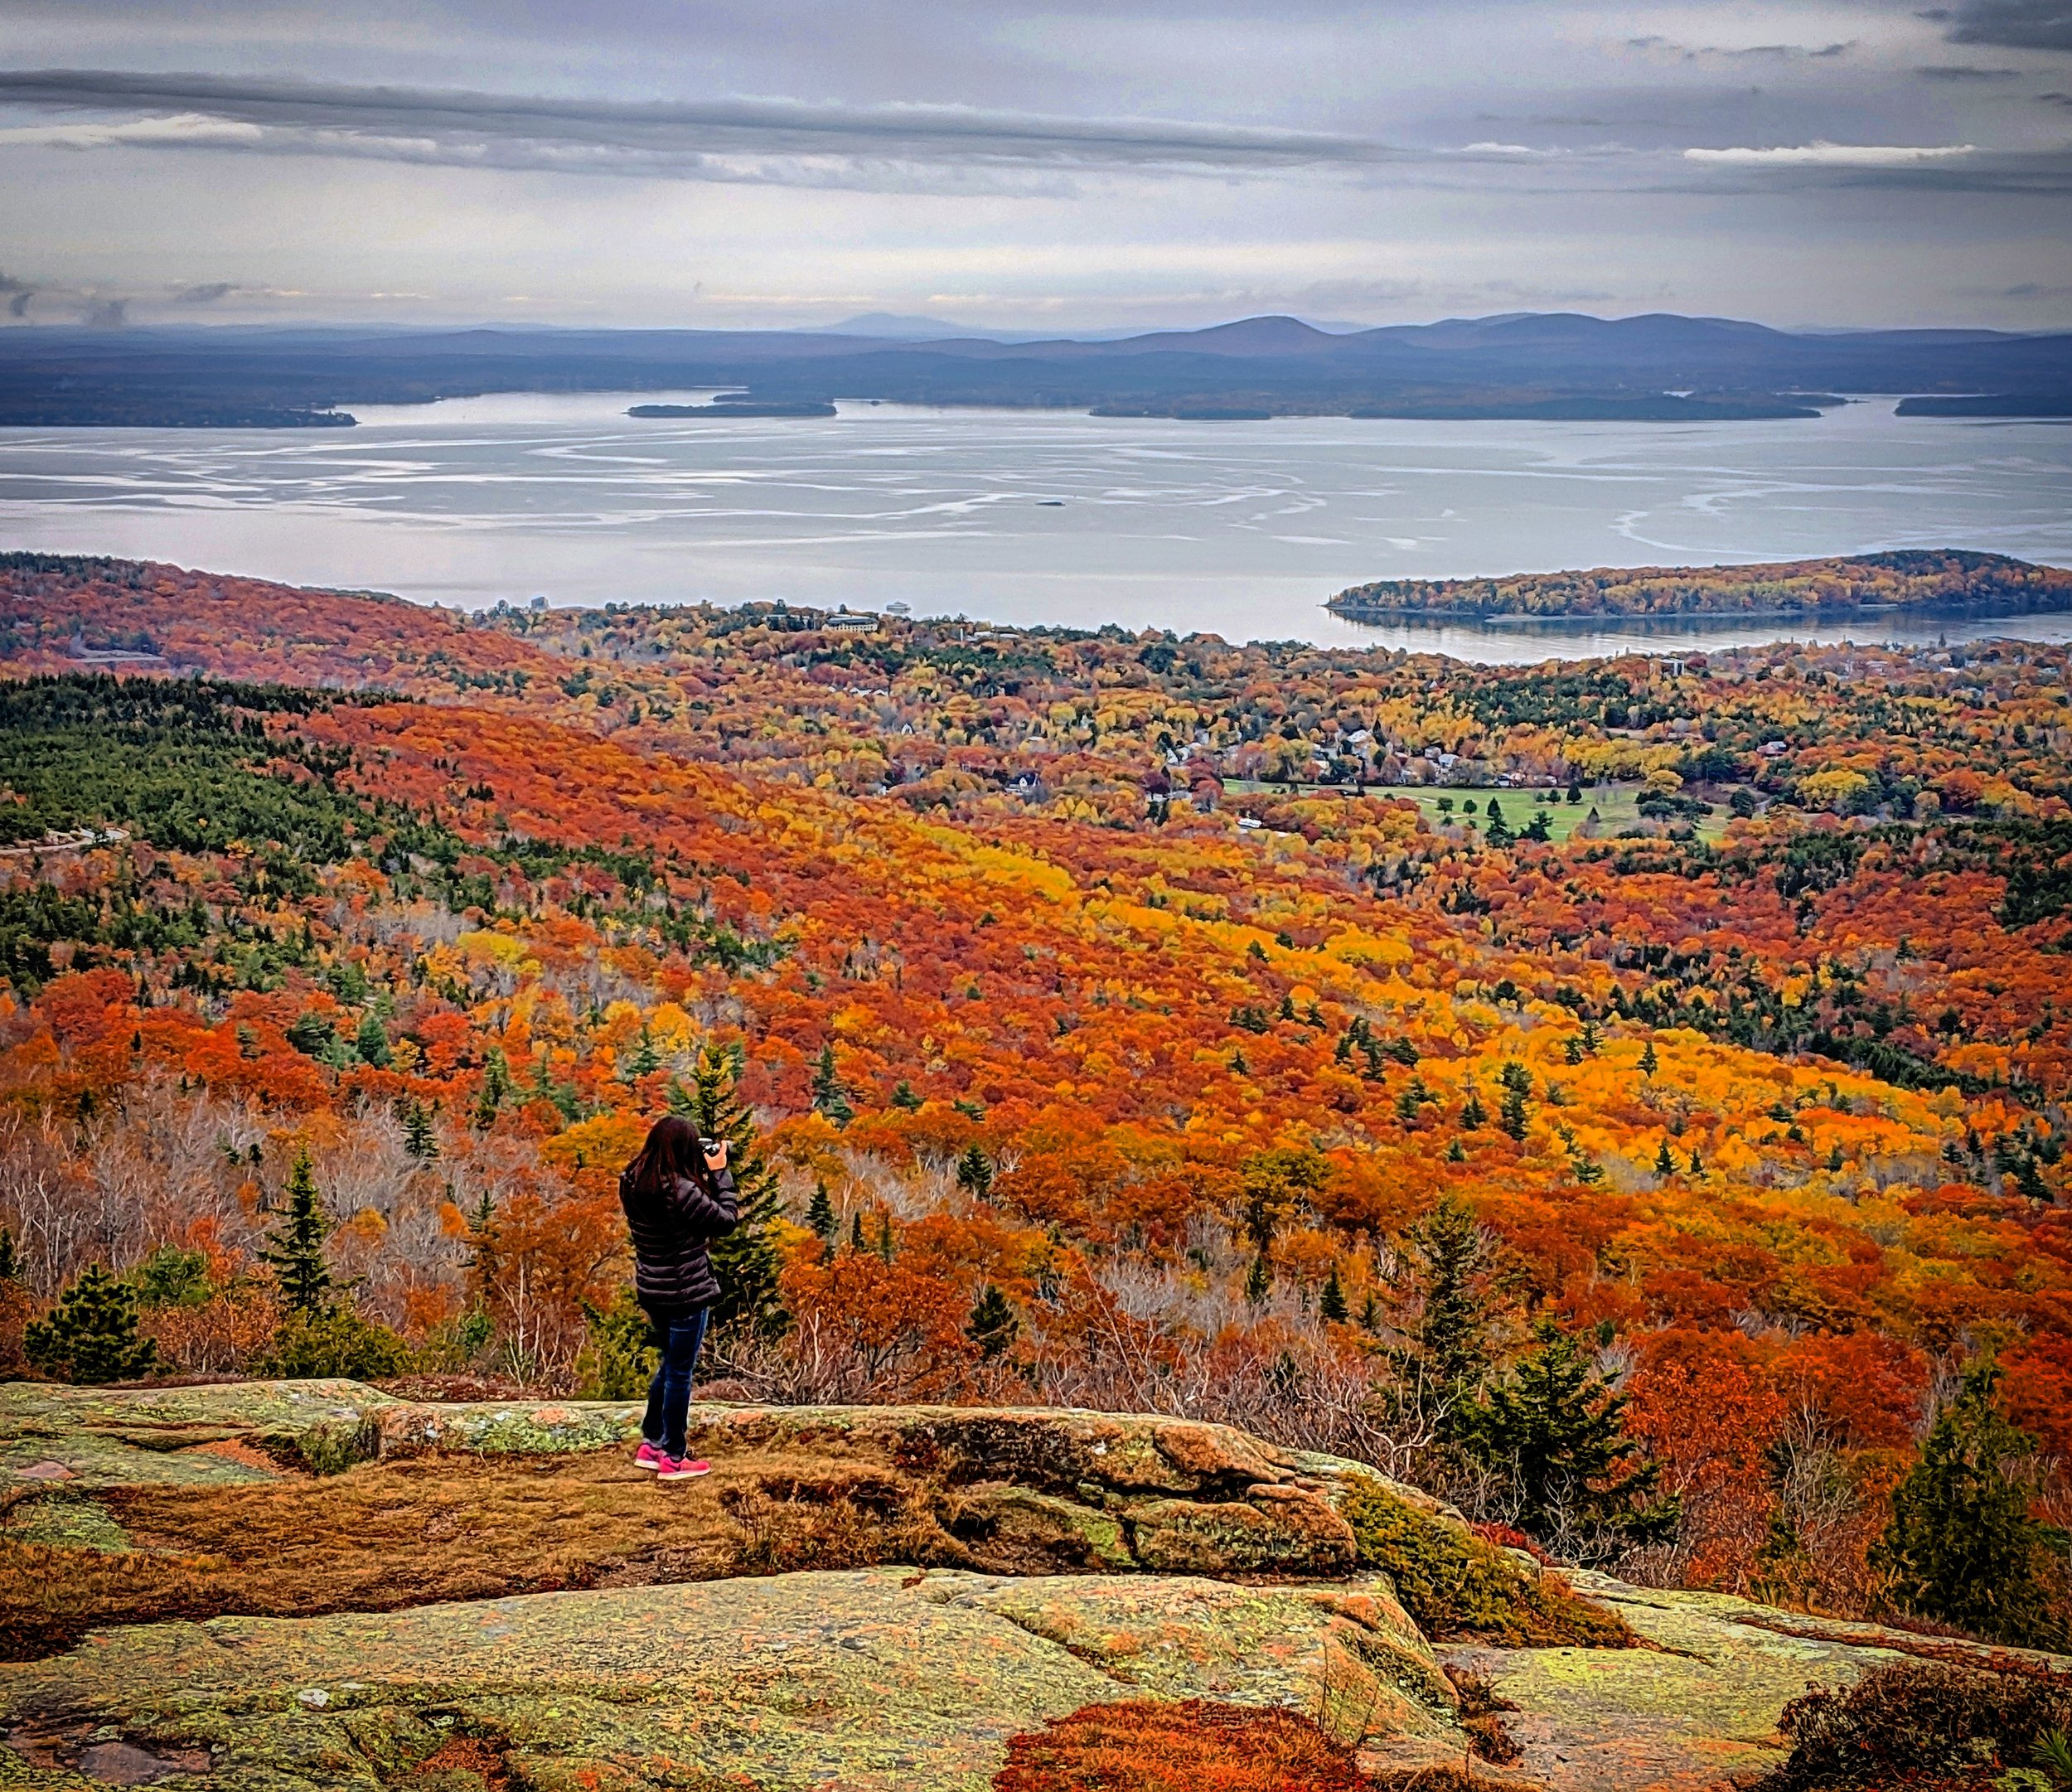 Photographing Acadia National Park During the Fall